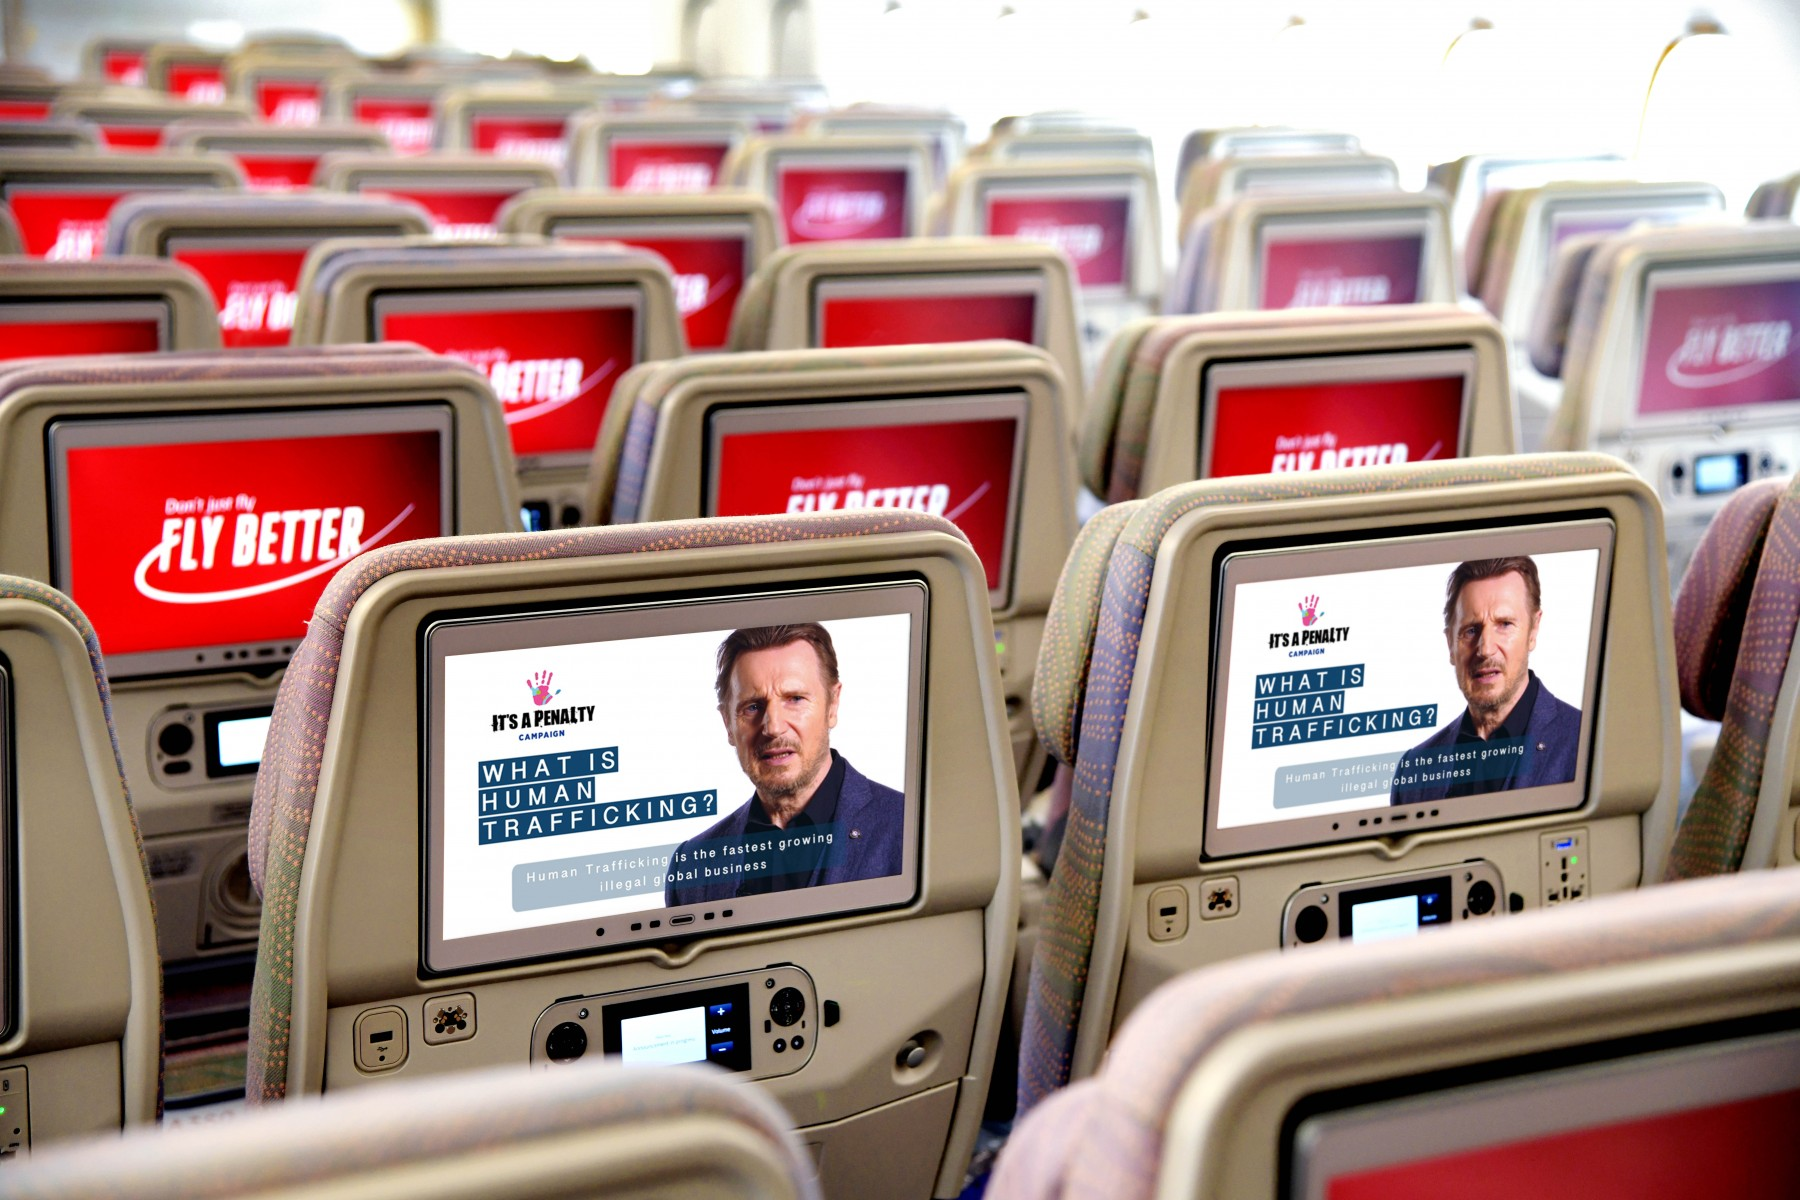 "Emirates is proud to support It's a Penalty's campaign's newest global film ""What is Human Trafficking?"" launched in collaboration with actor Liam Neeson."